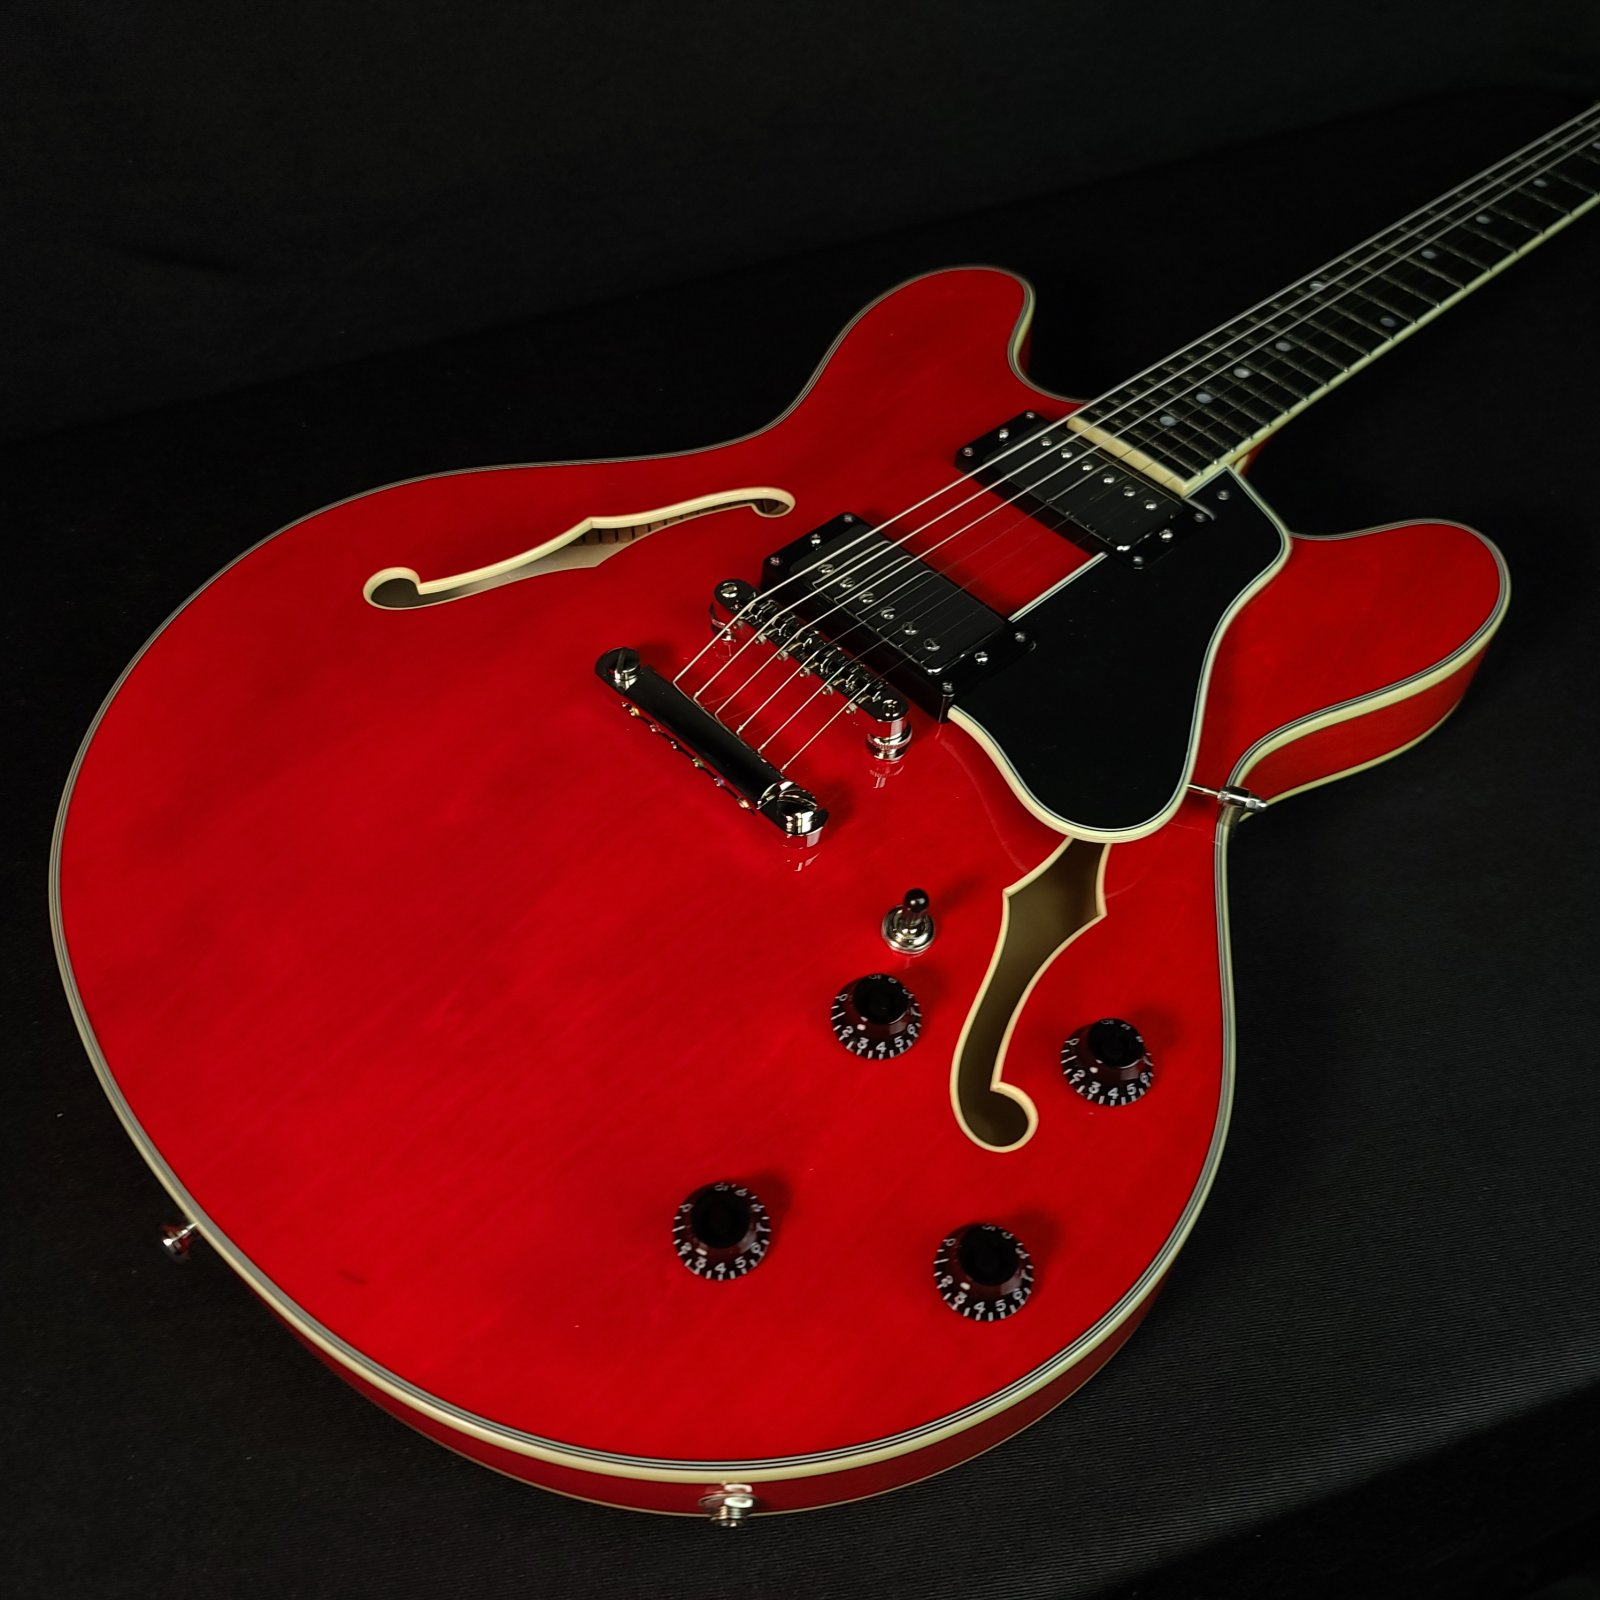 Eastman T386 #0655 Red Semi Hollow Electric Guitar, Hard Case